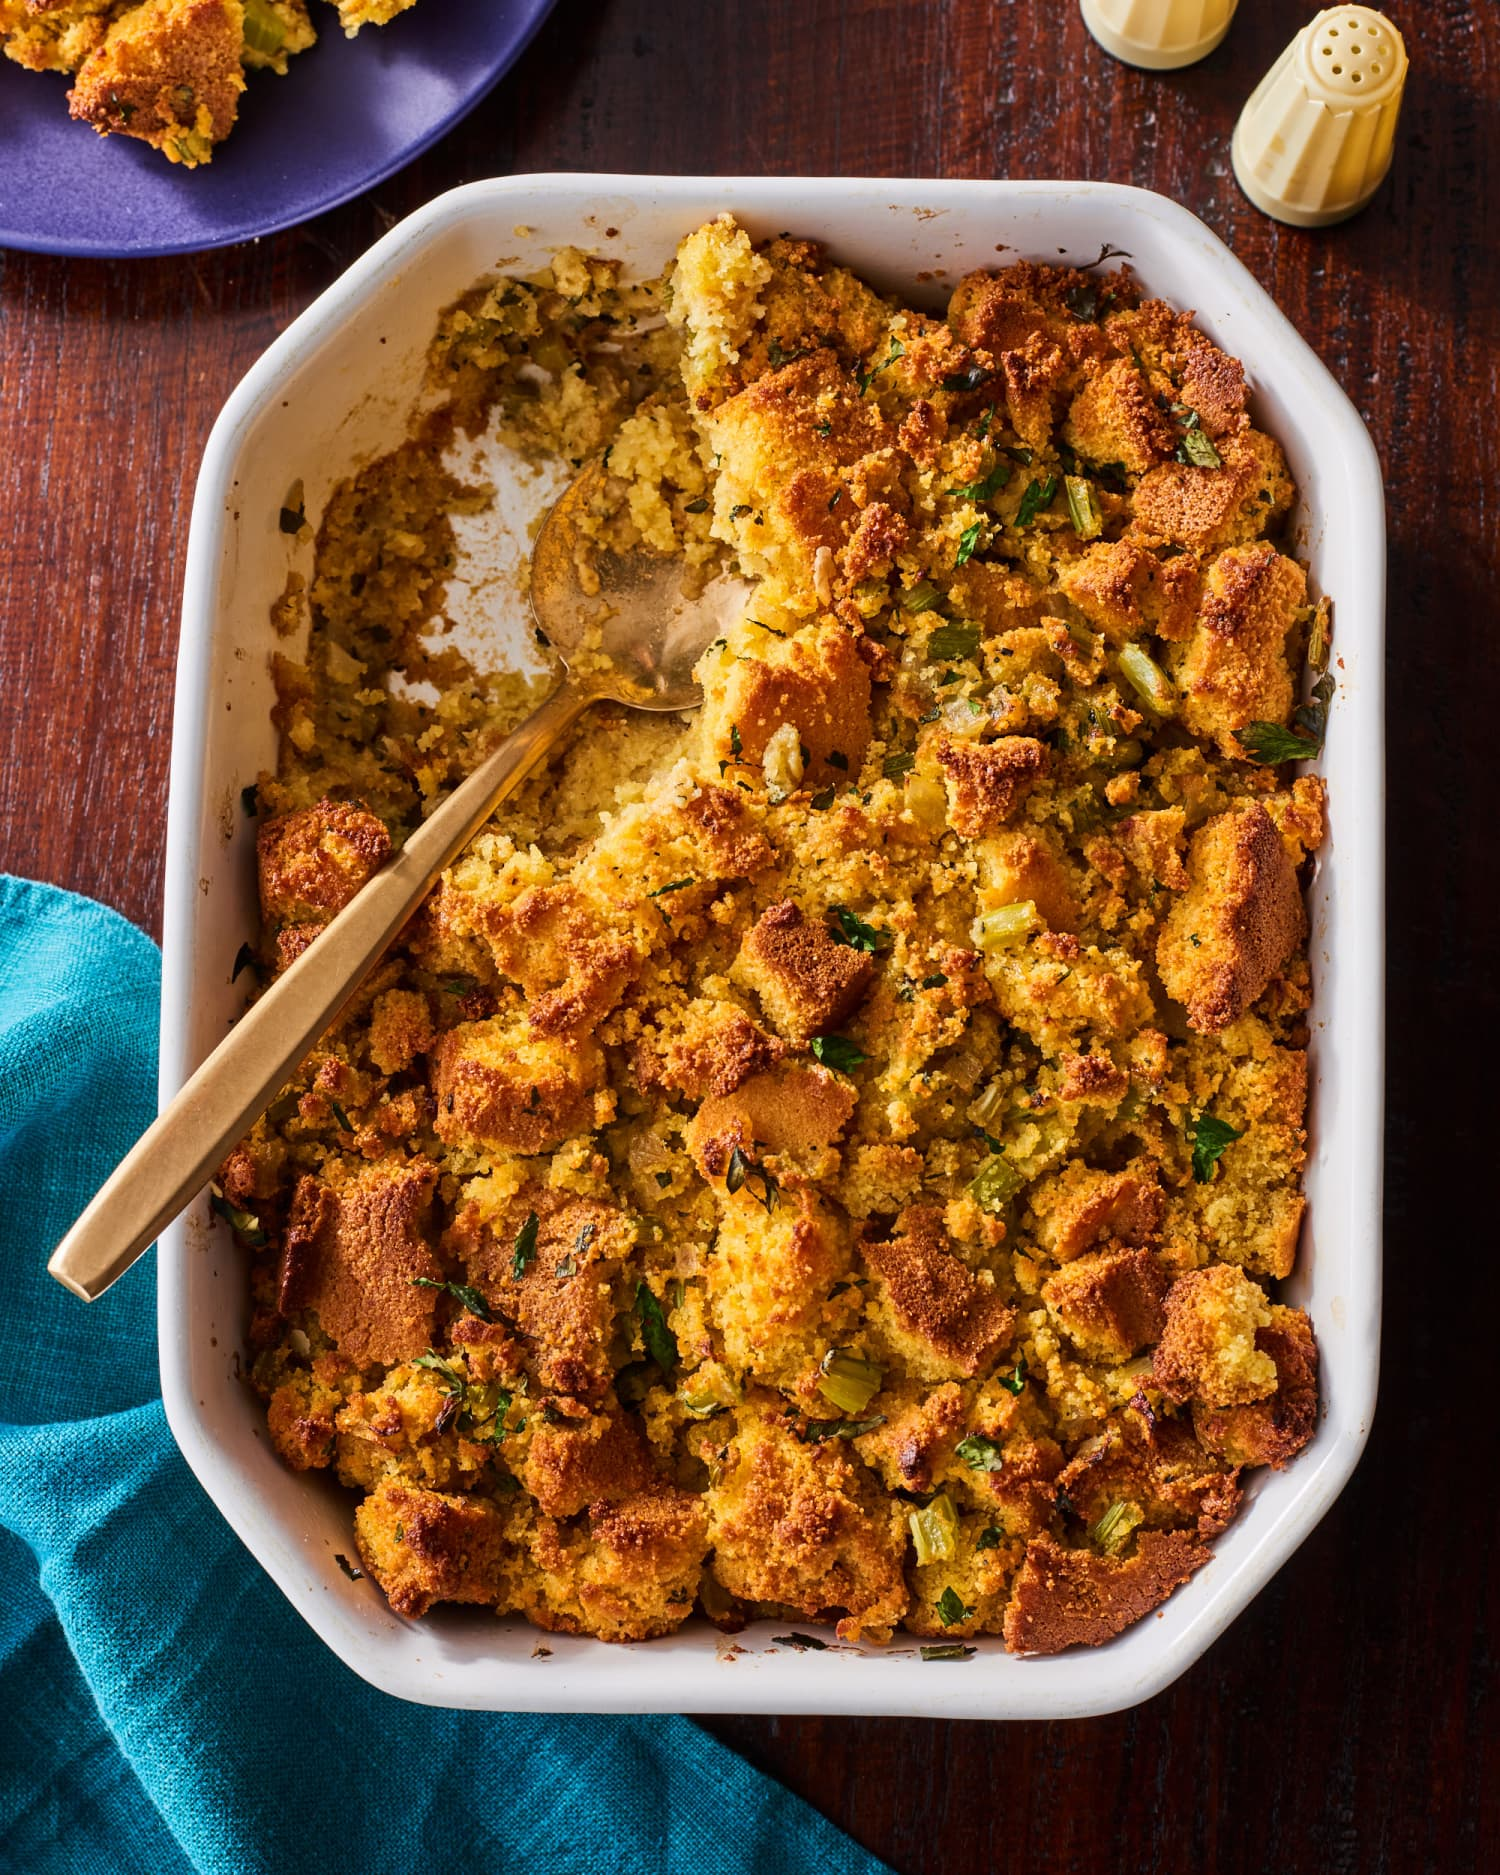 Classic Cornbread Stuffing Shouldn't Be Messed With. Here's the Best Recipe!